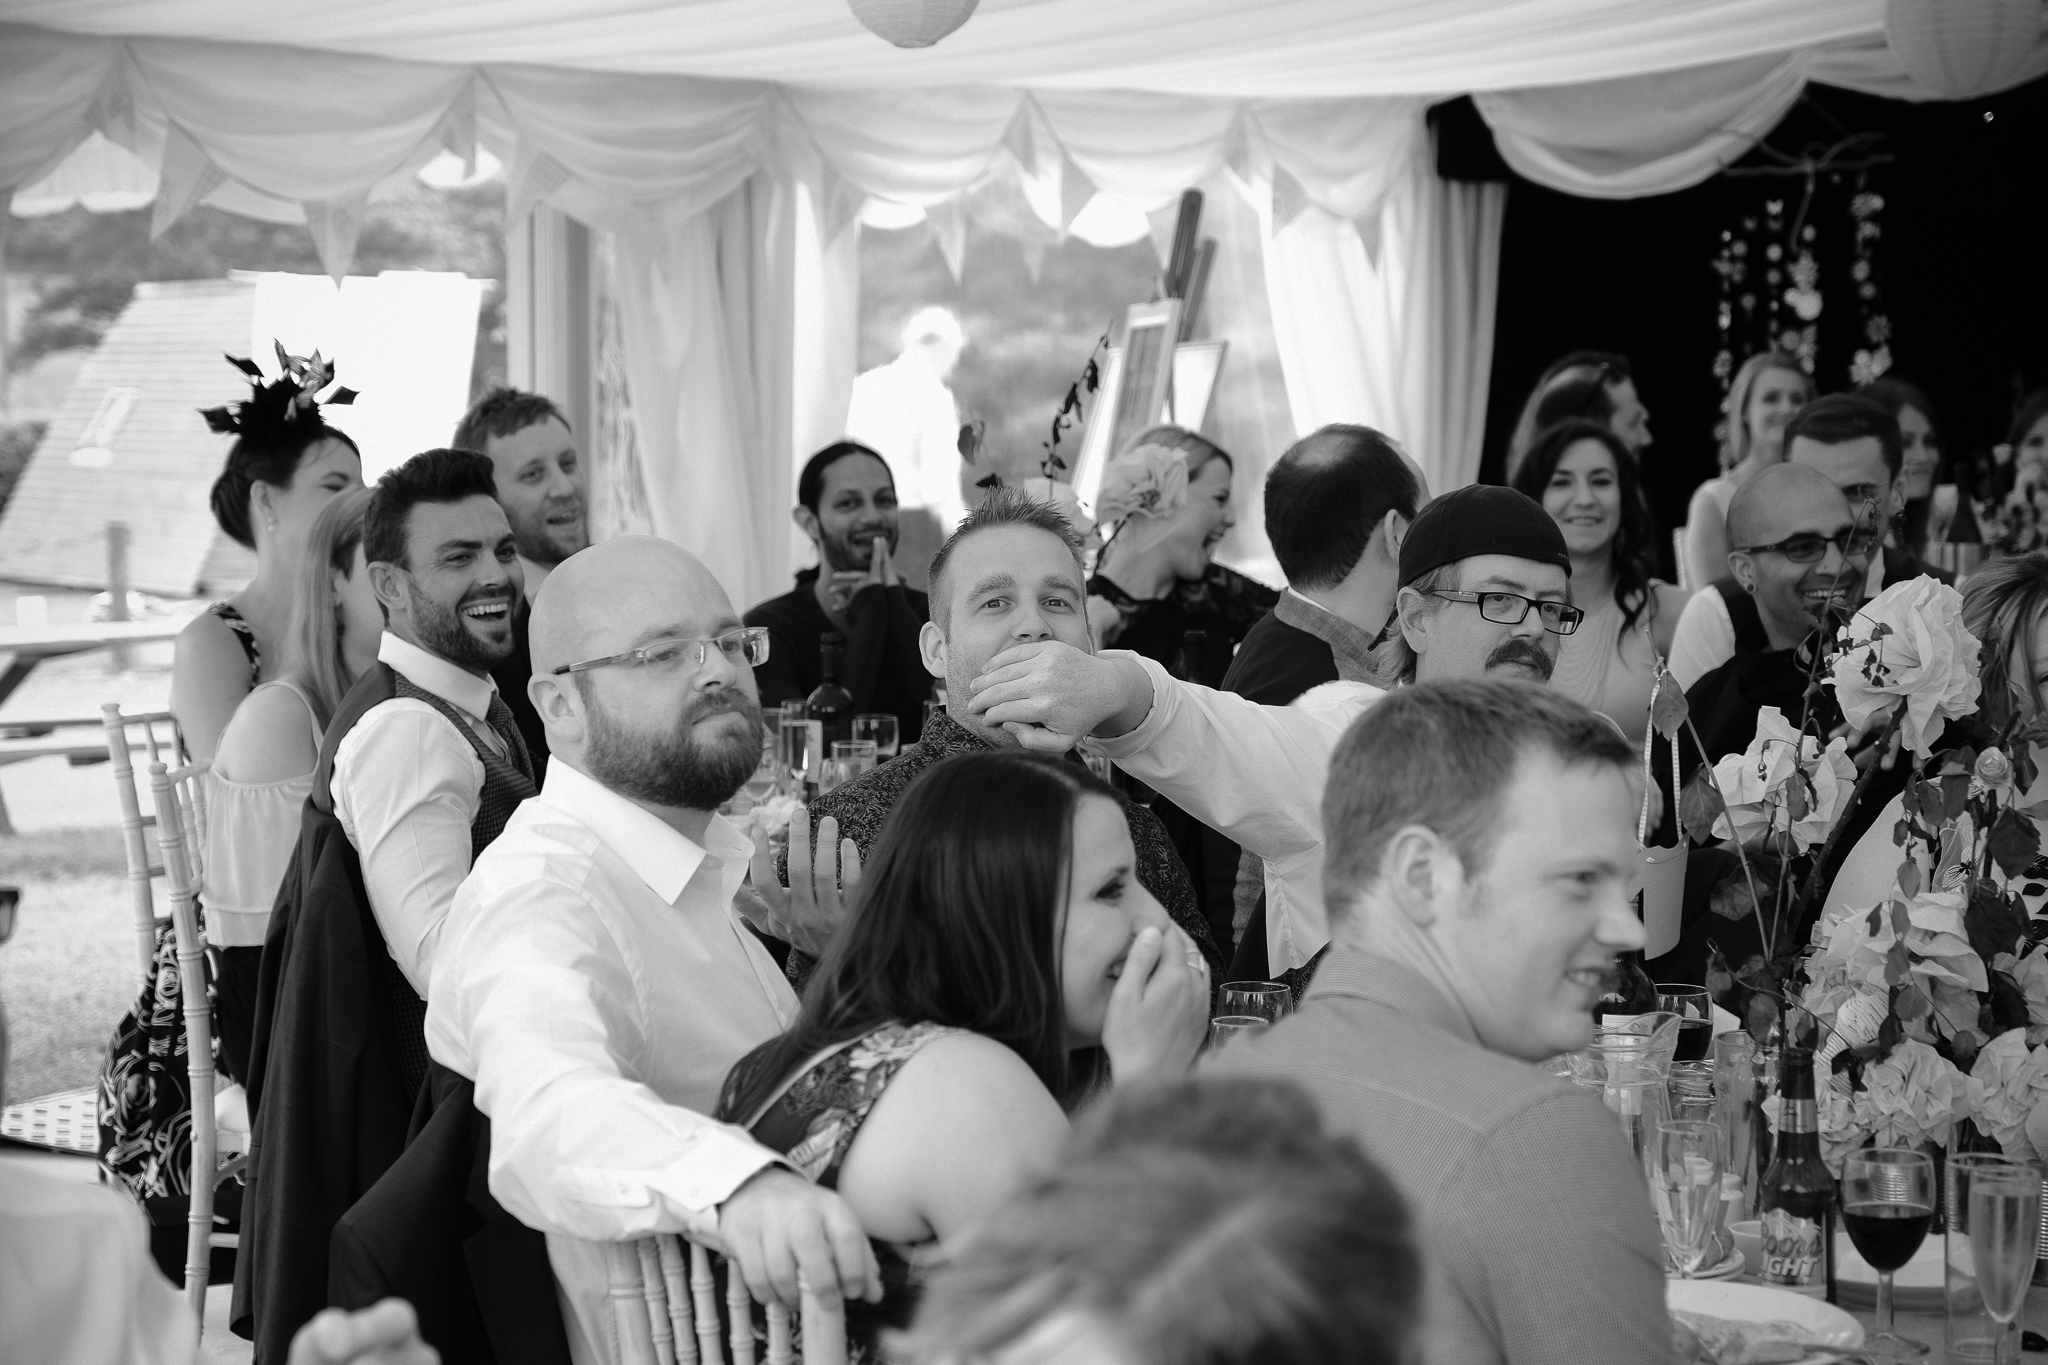 Black and white photo of one groomsman holding his hand over another groomsman's mouth